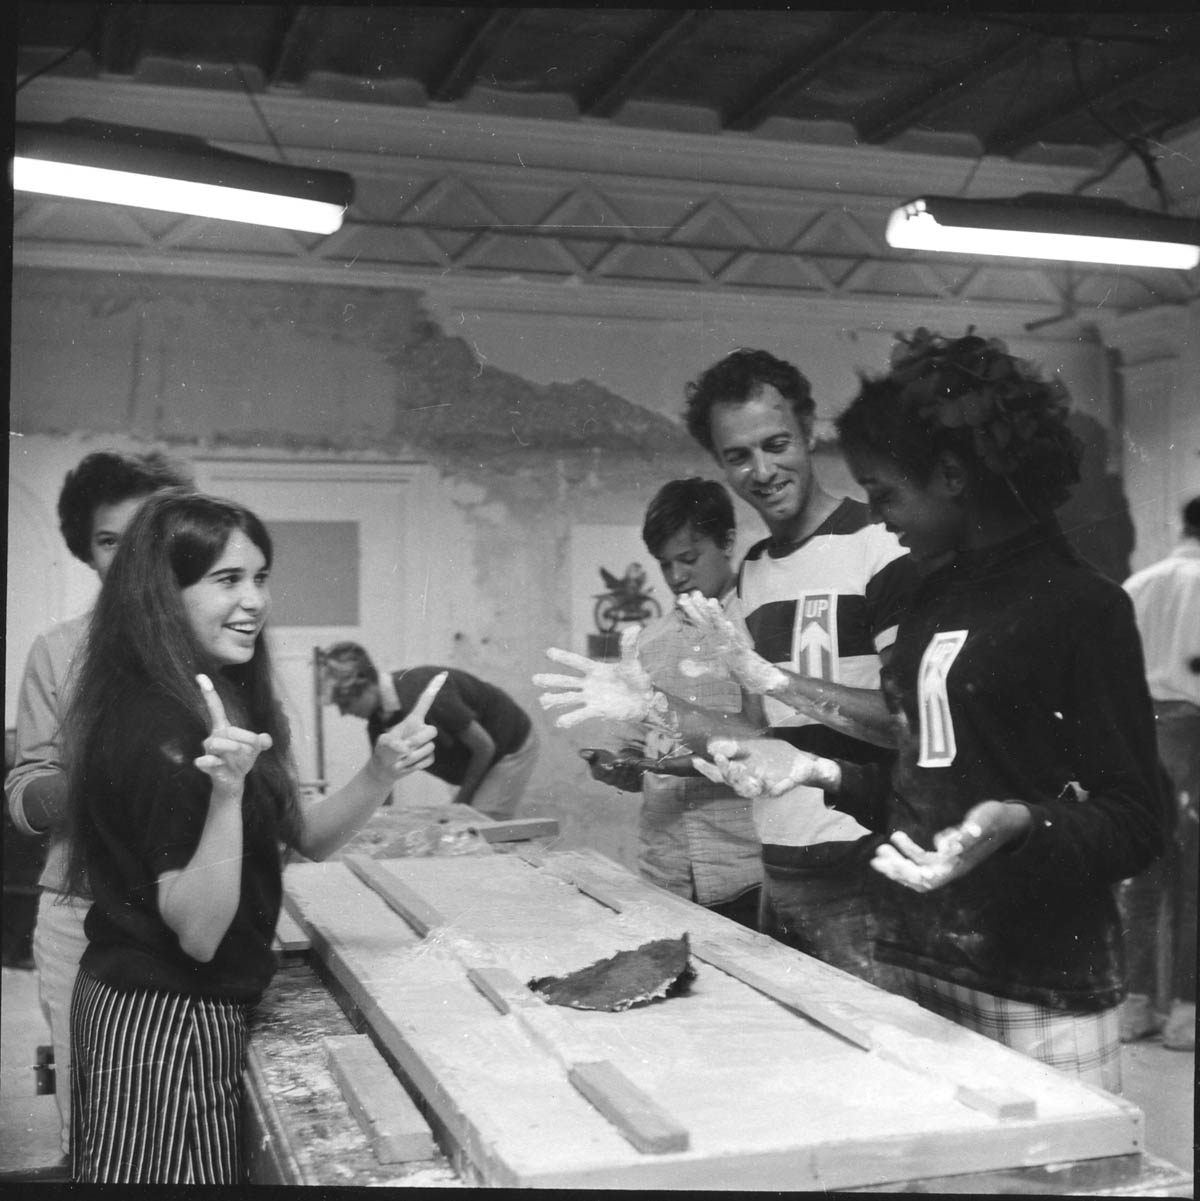 Students experiment with plaster, with sculptor Richard Randall (in striped shirt) leading the way, 1968